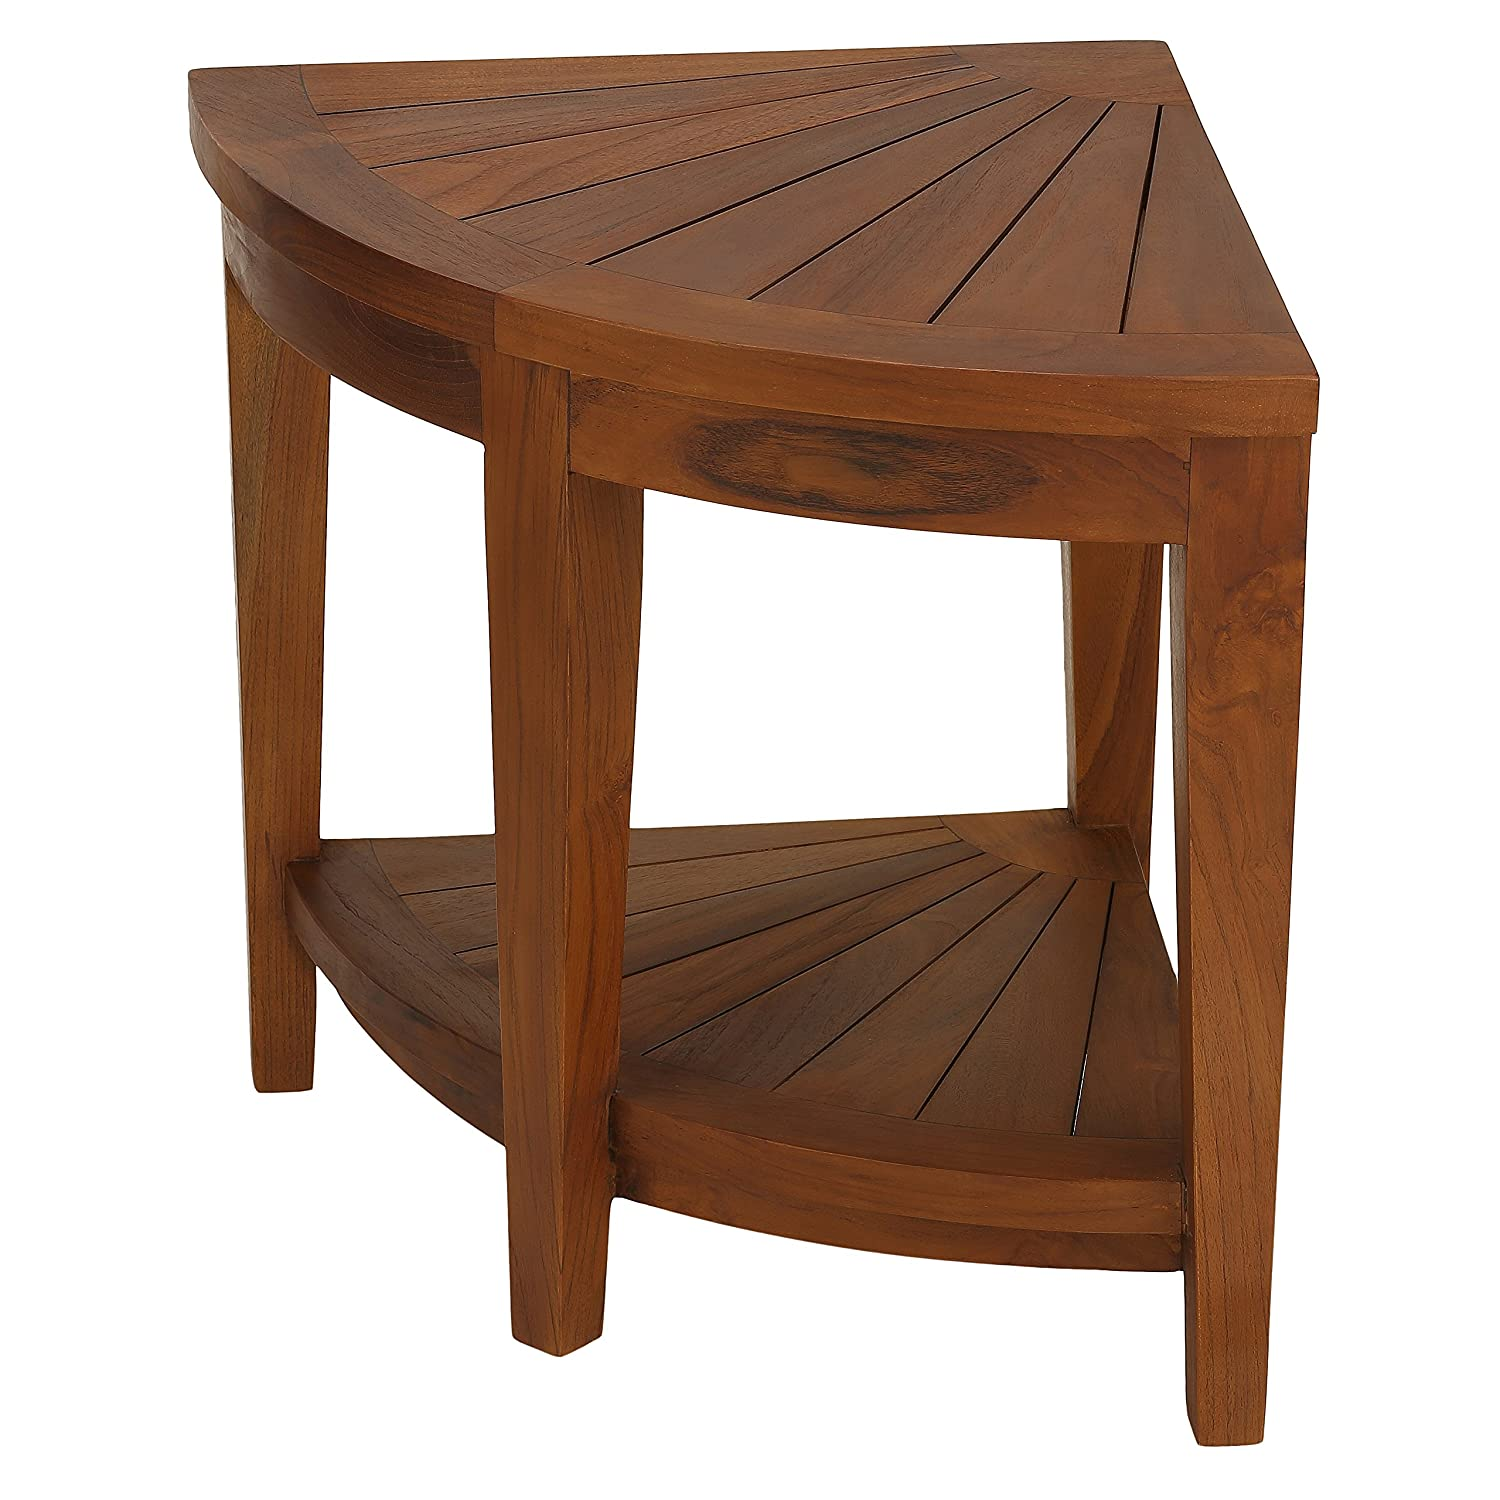 Amazon.com Bare Decor Hanna Corner Spa Stool in Solid Teak Wood Corner Teak Oil Home u0026 Kitchen  sc 1 st  Amazon.com : teak stools - islam-shia.org